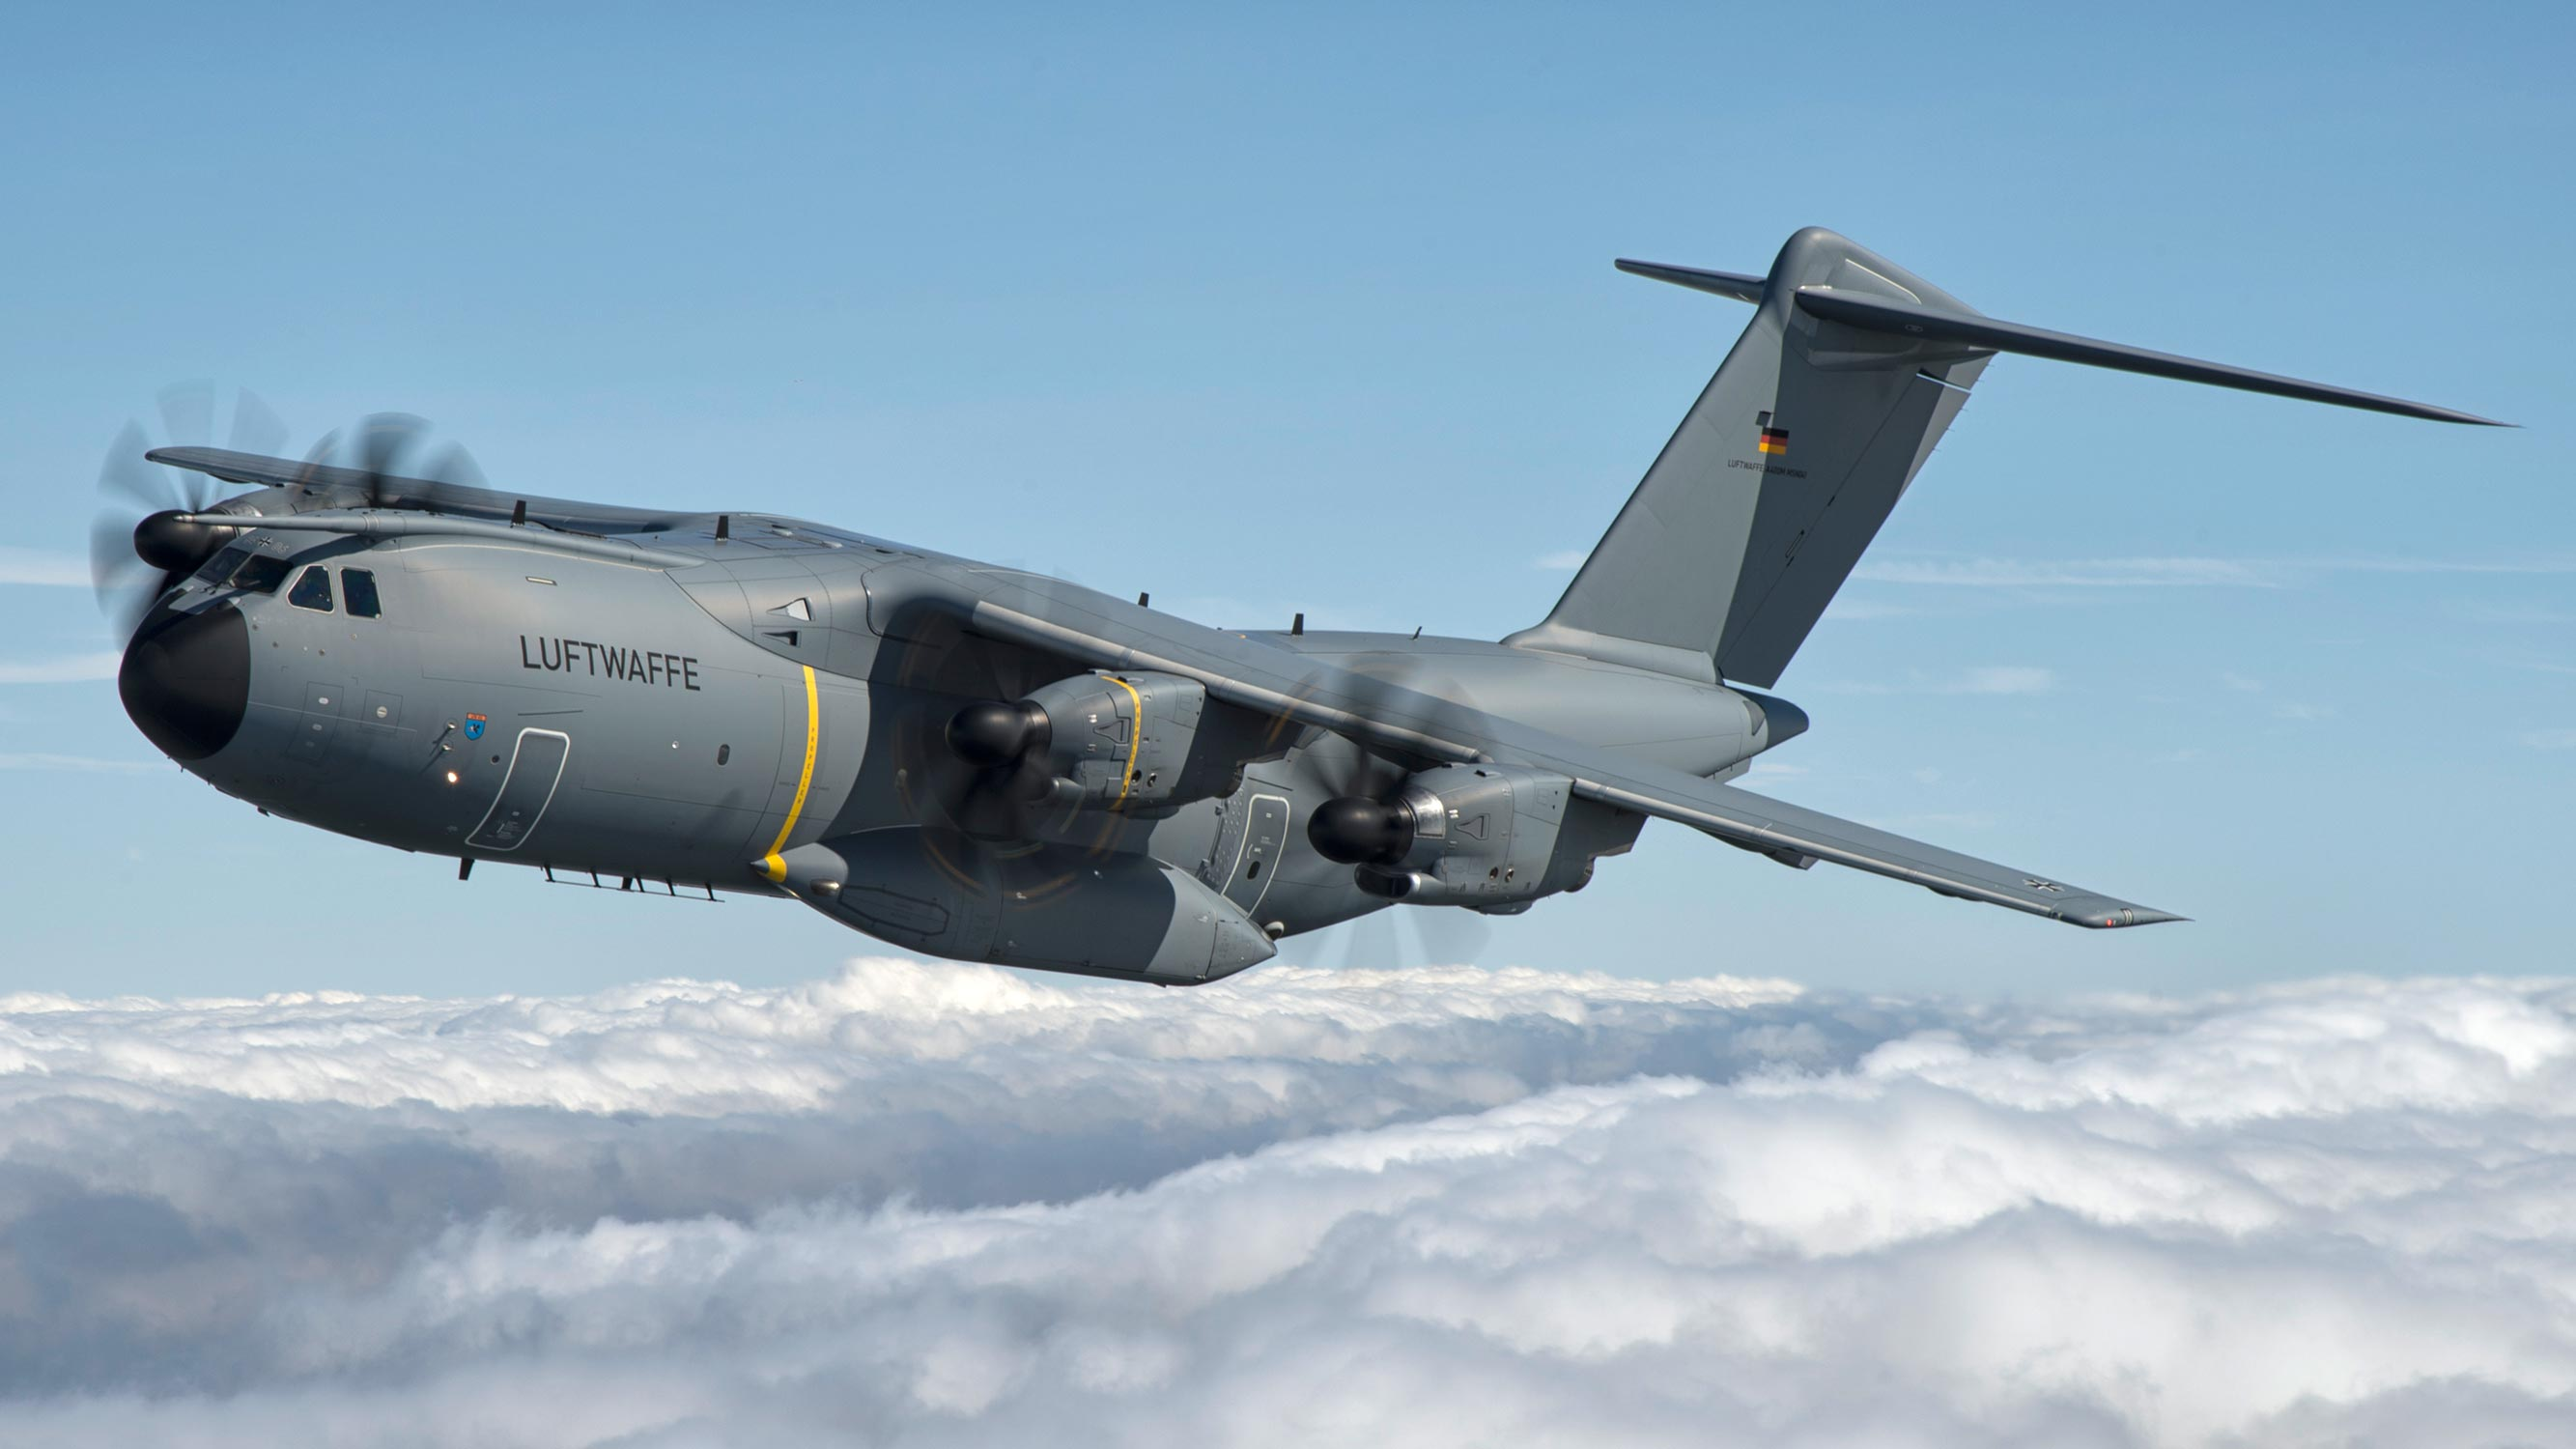 Germany's Luftwaffe Airbus A400M transport aircraft